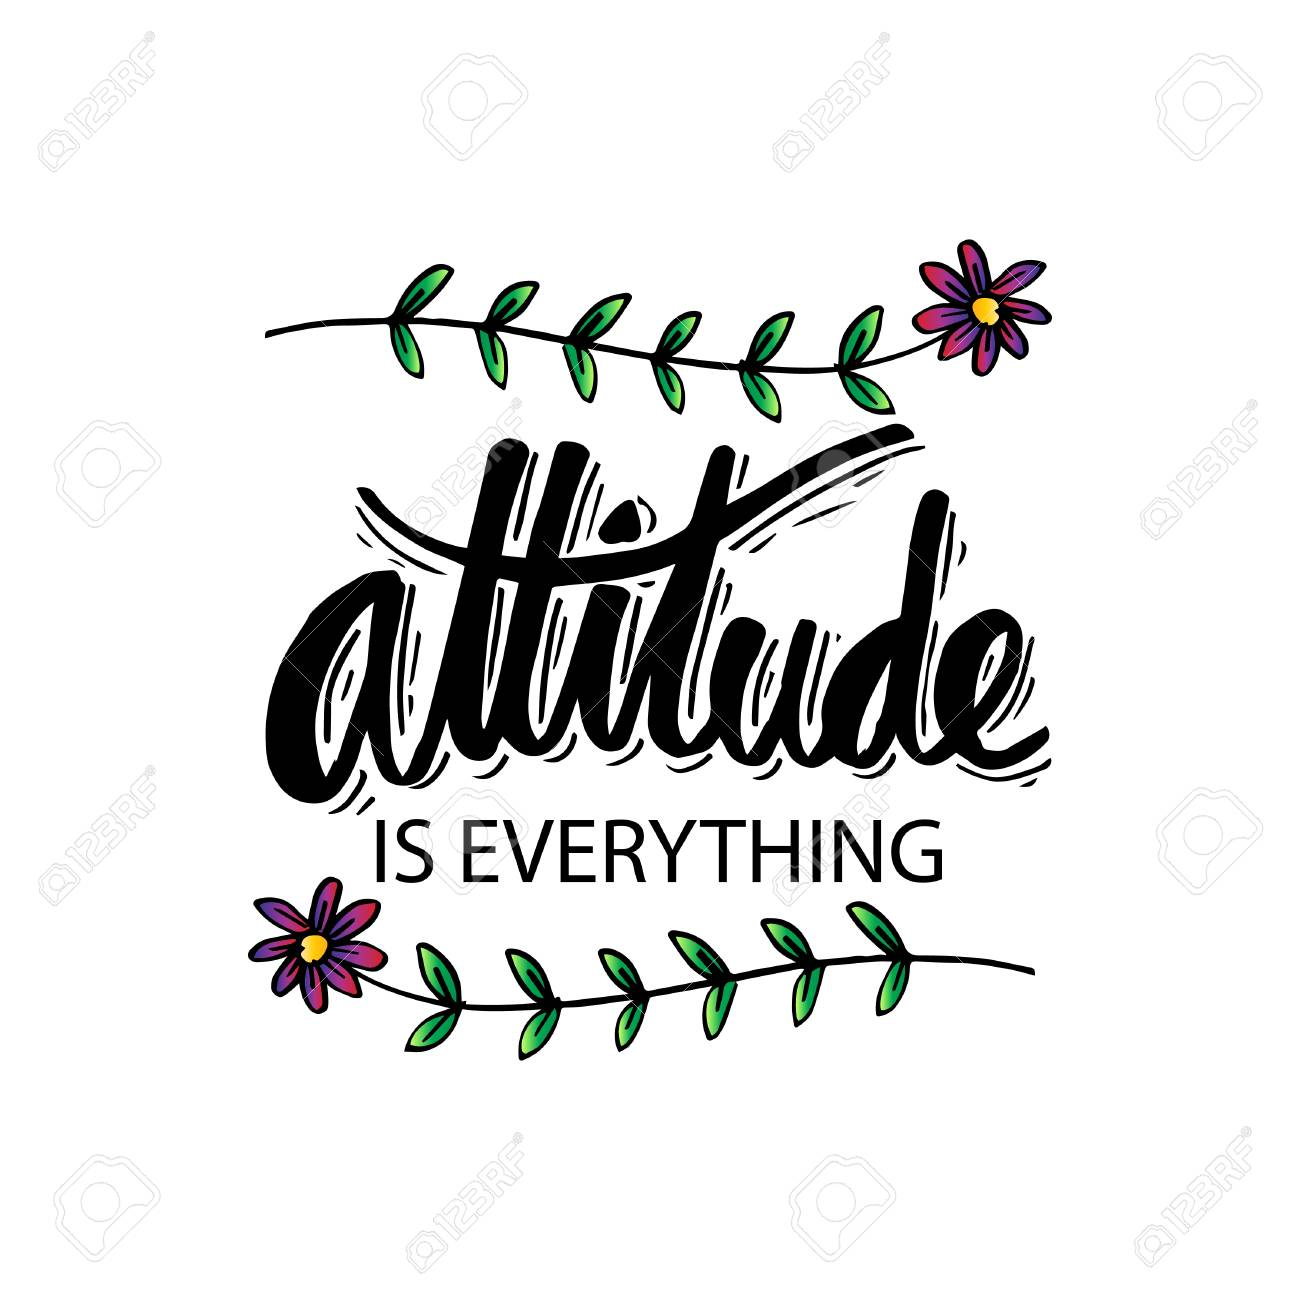 Attitude Is Everything Hand Lettering Motivational Quote Royalty